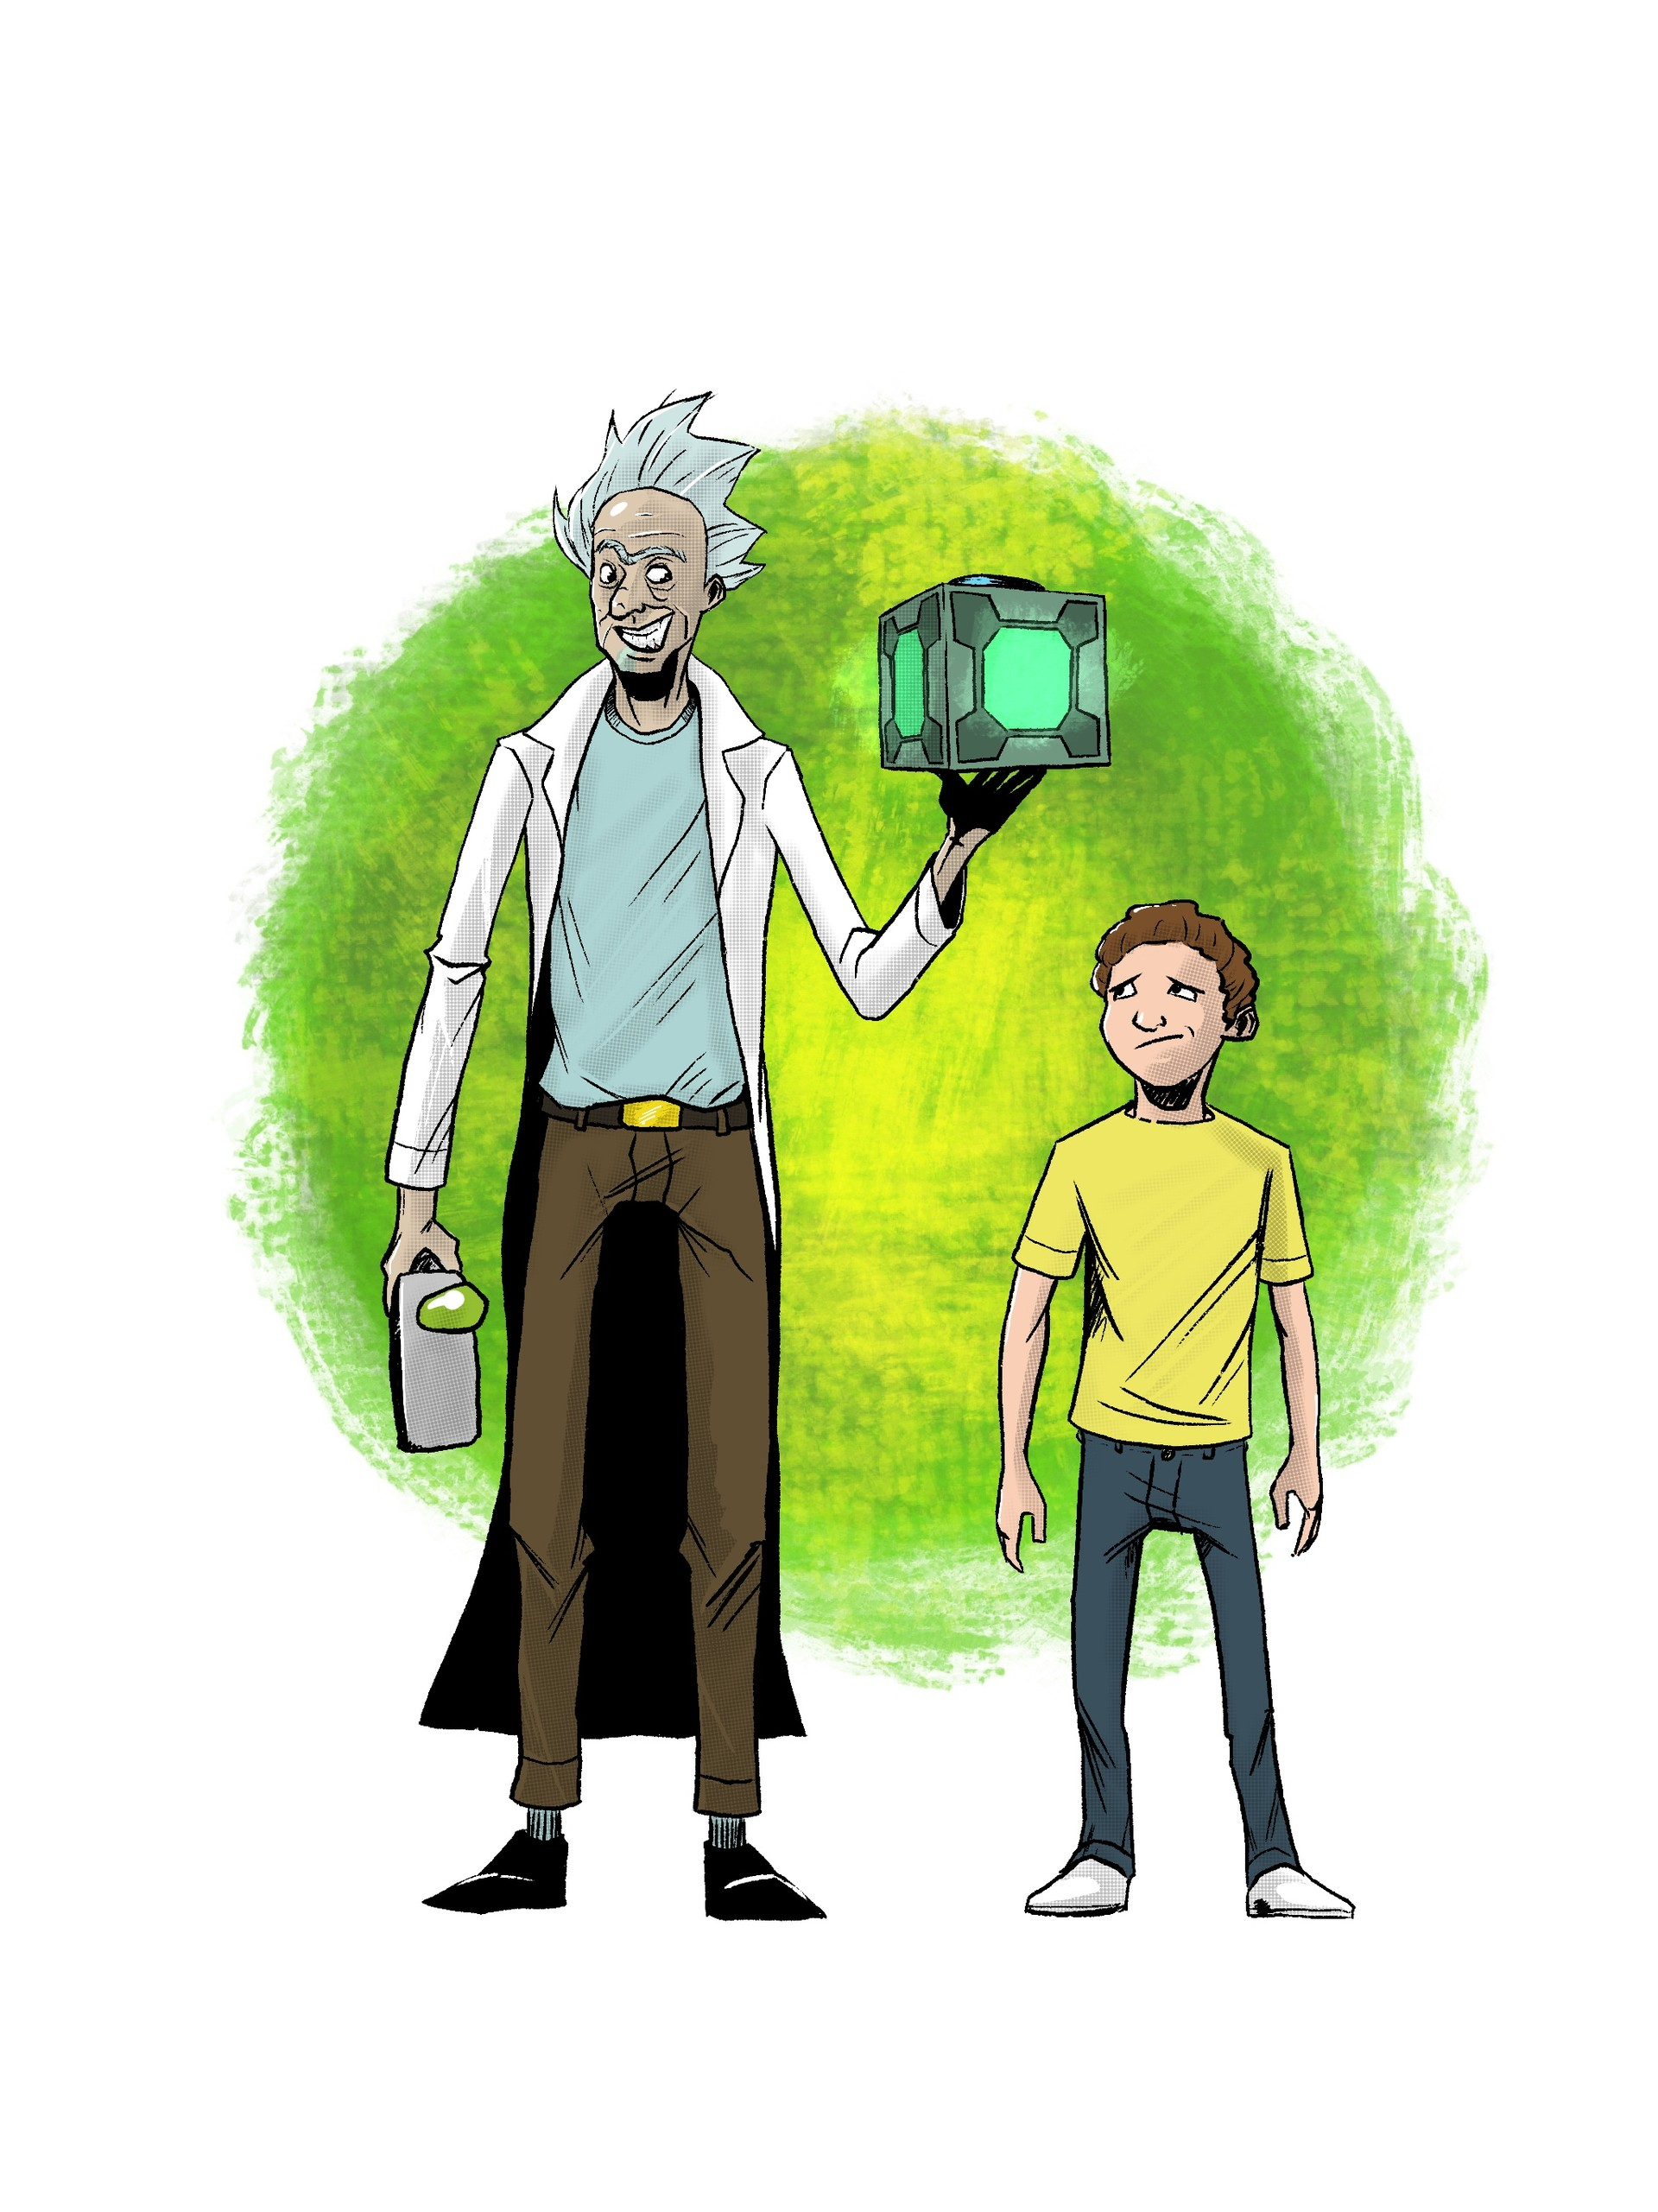 Rick and Morty - Digital in Procreate